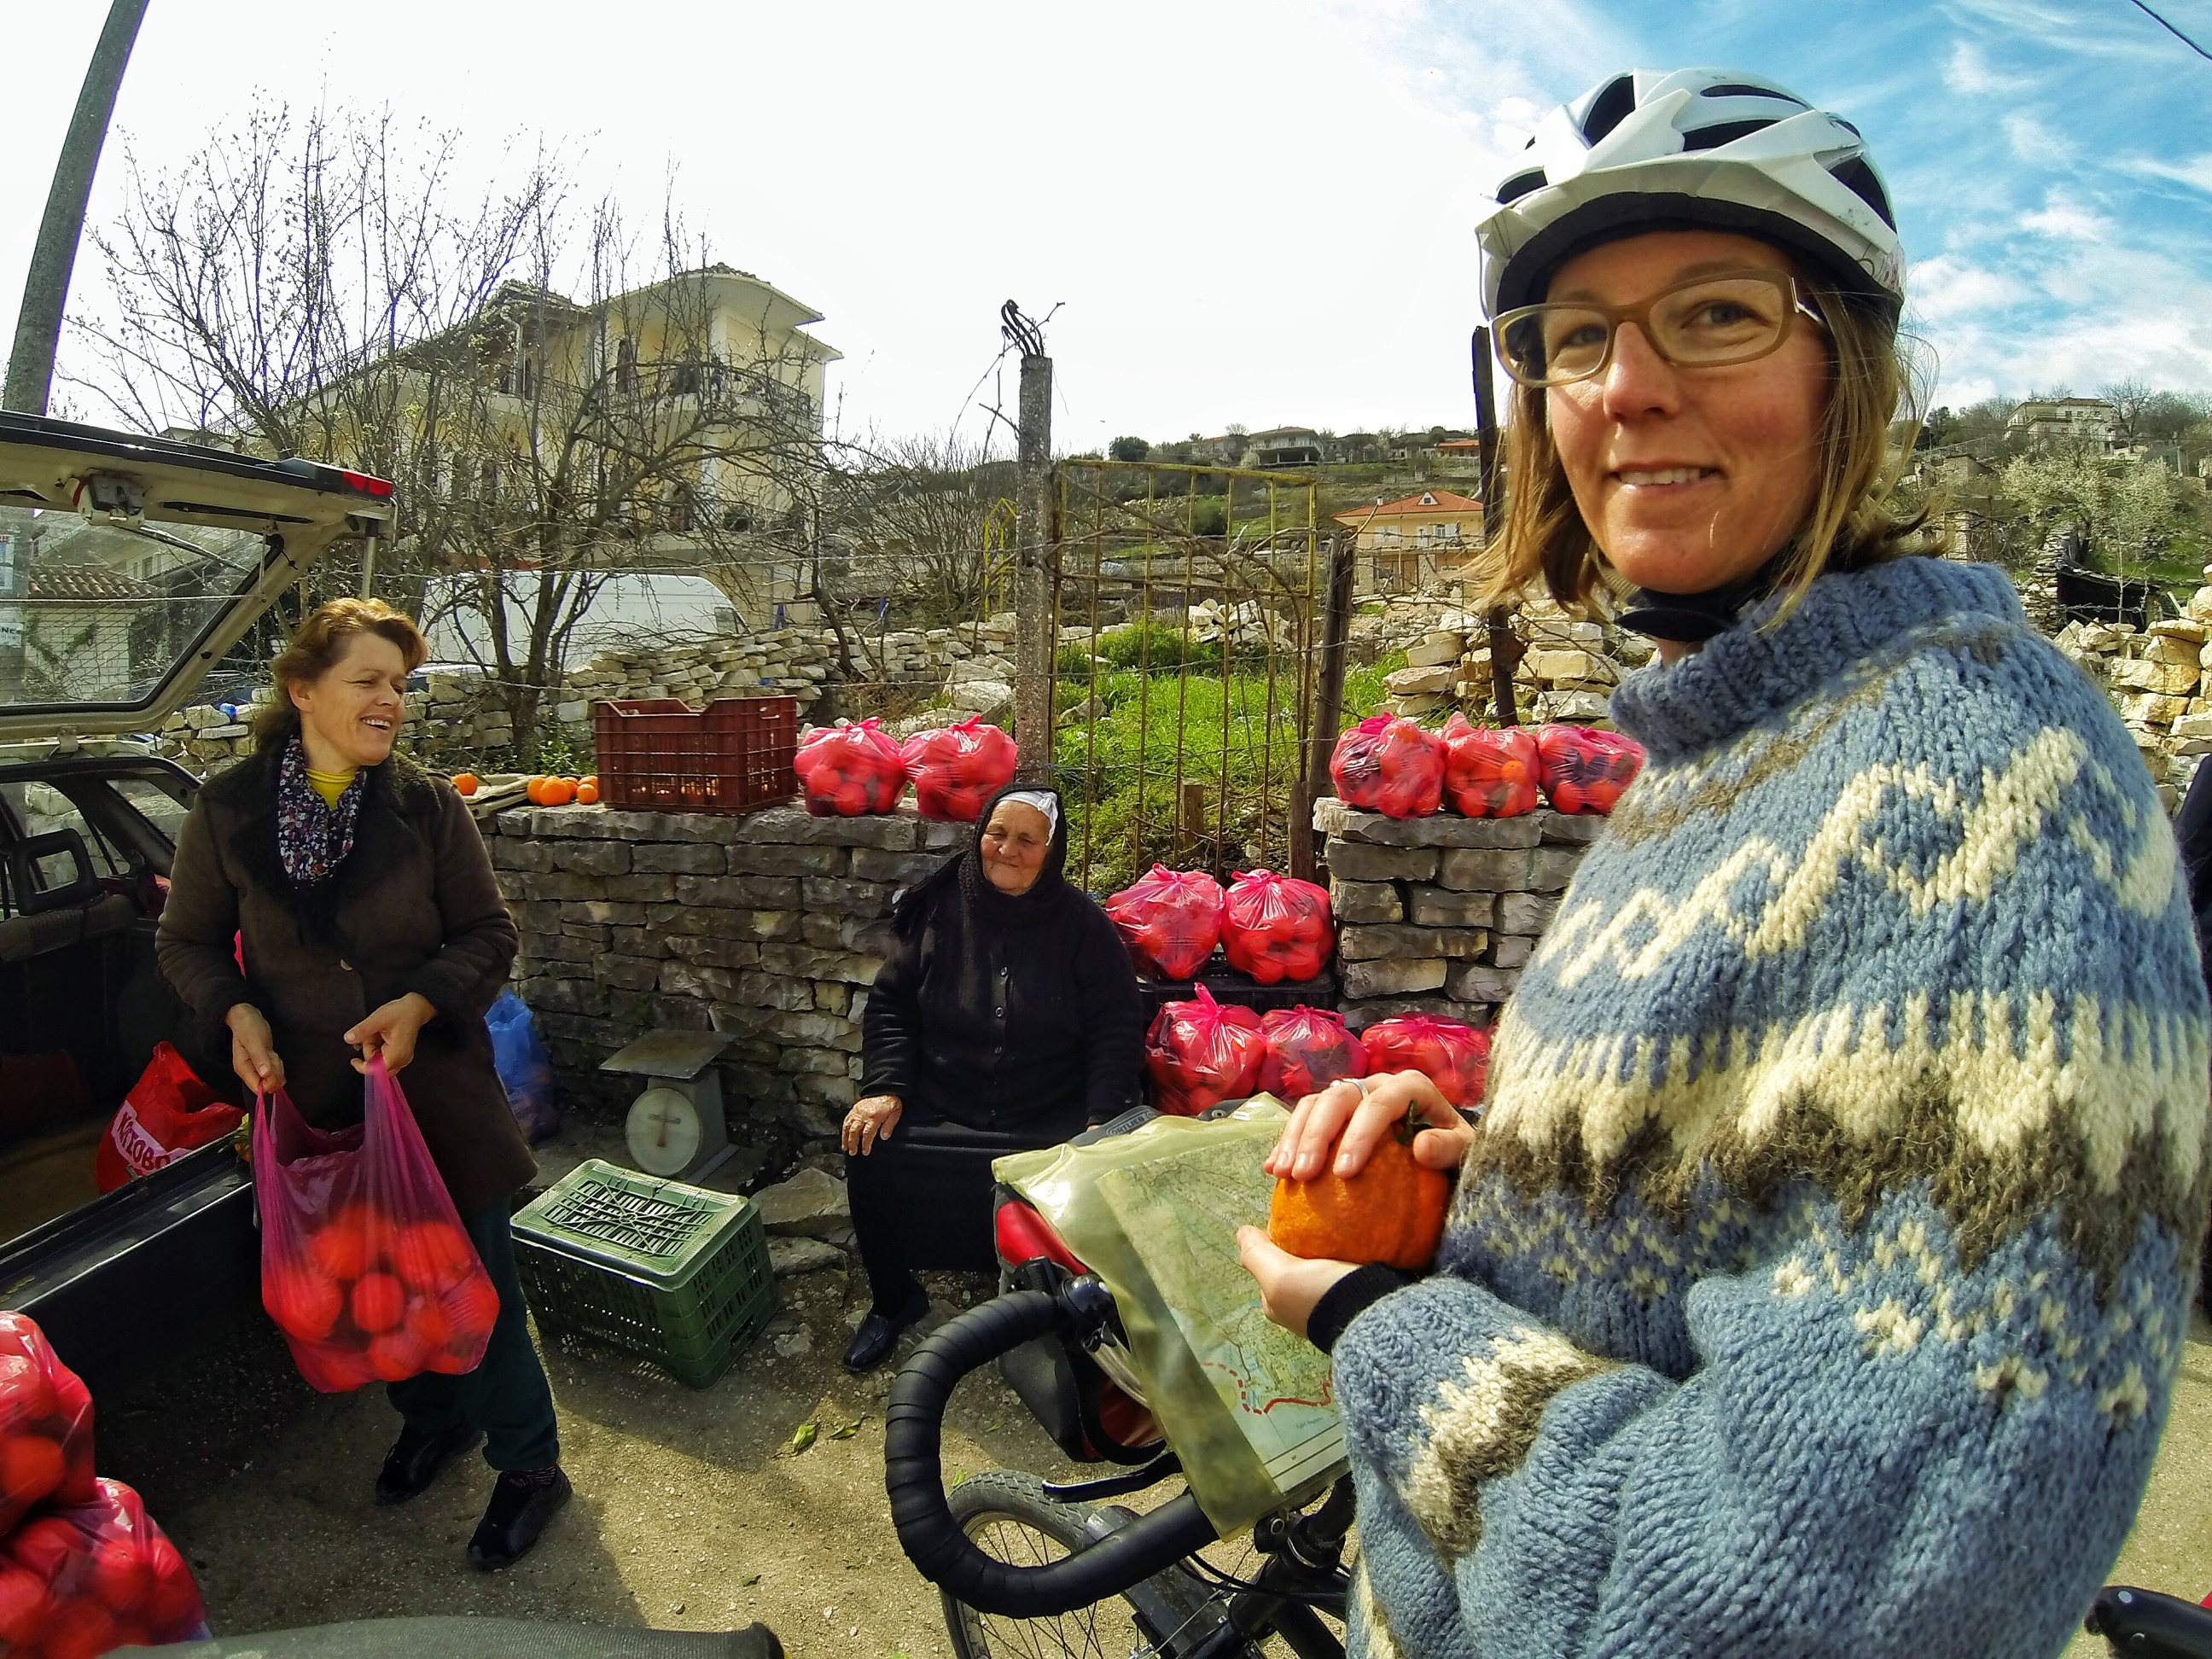 Bicycle Touring Albania. Buying Oranges on the roadside from friendly locals